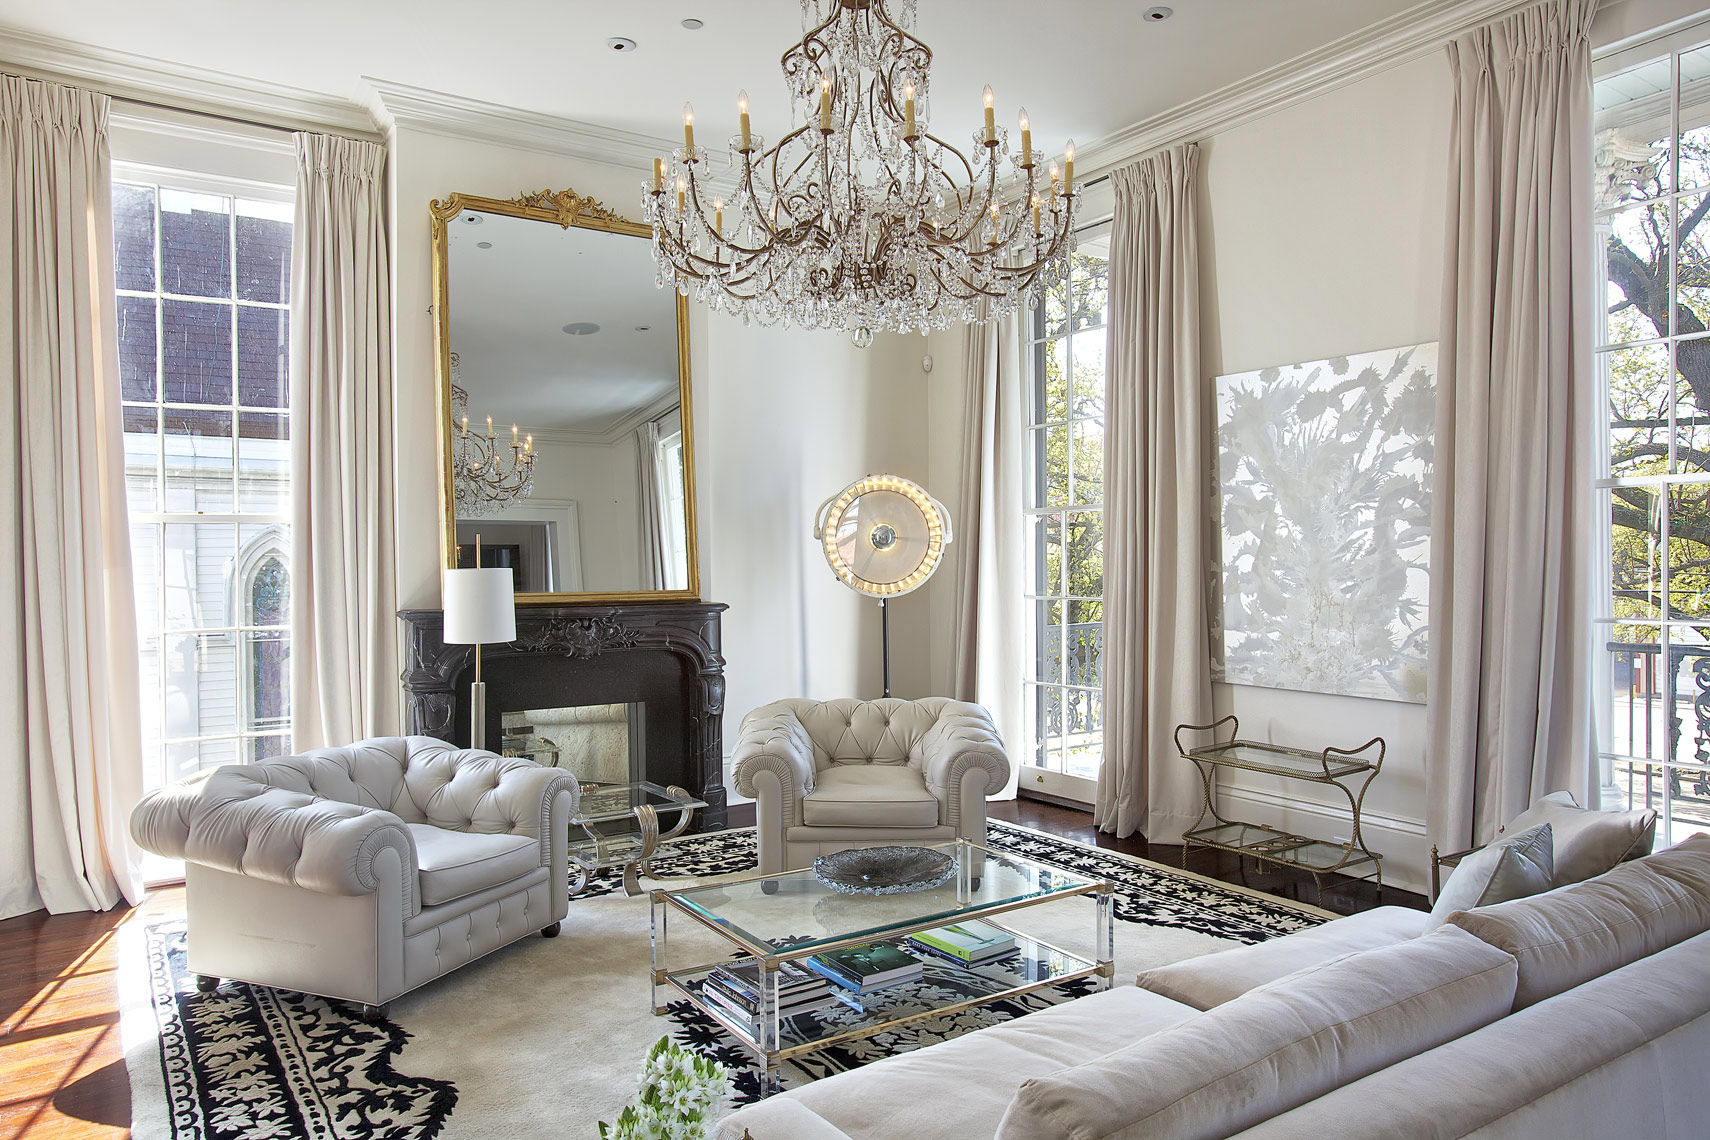 Traditional interior design NY photographer in new orleans. Interior design photographer